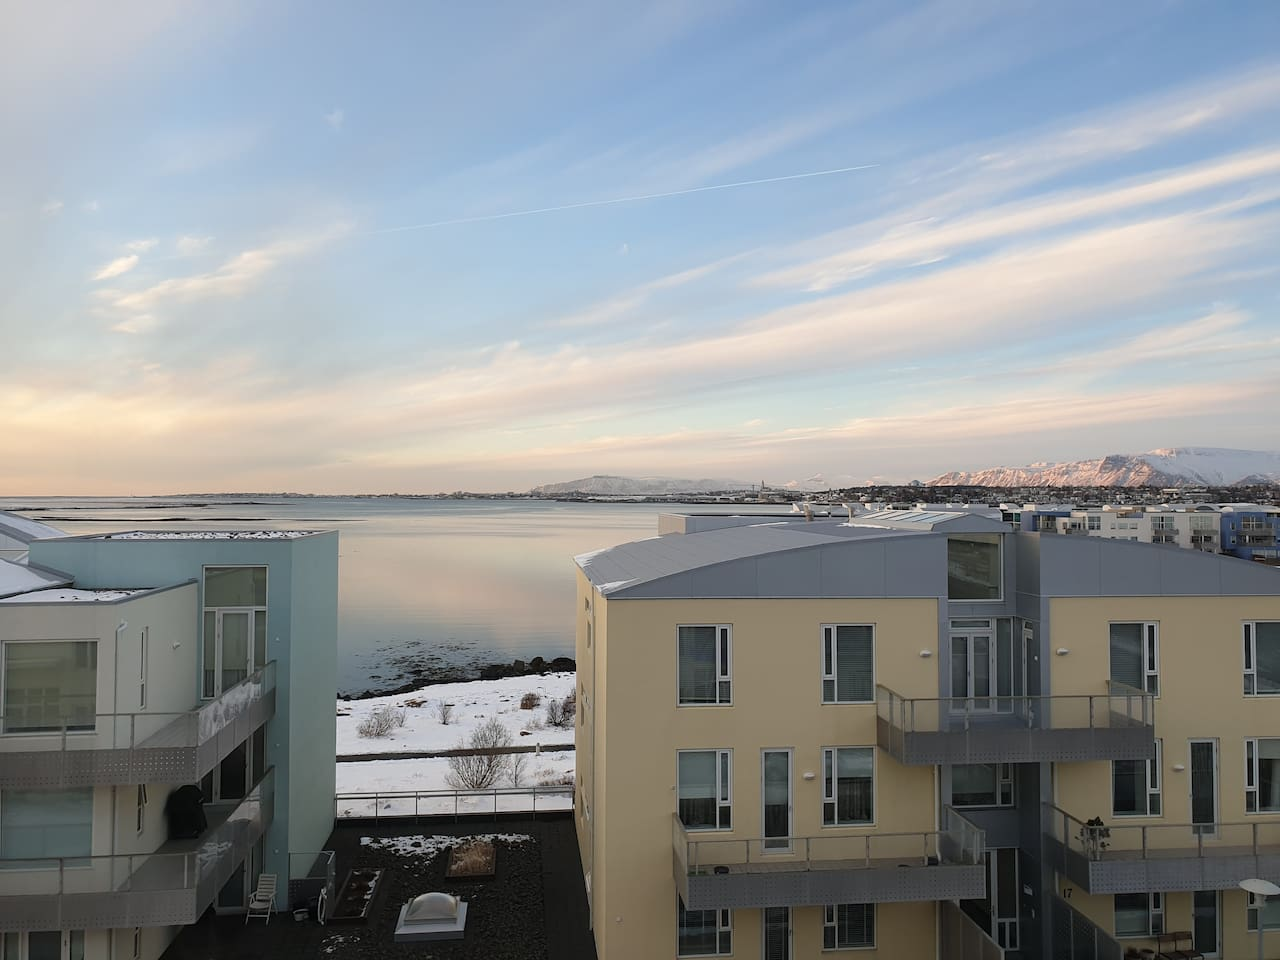 Fantastic panoramic view over the sea, Reykjavik city and the surrounding mountains.